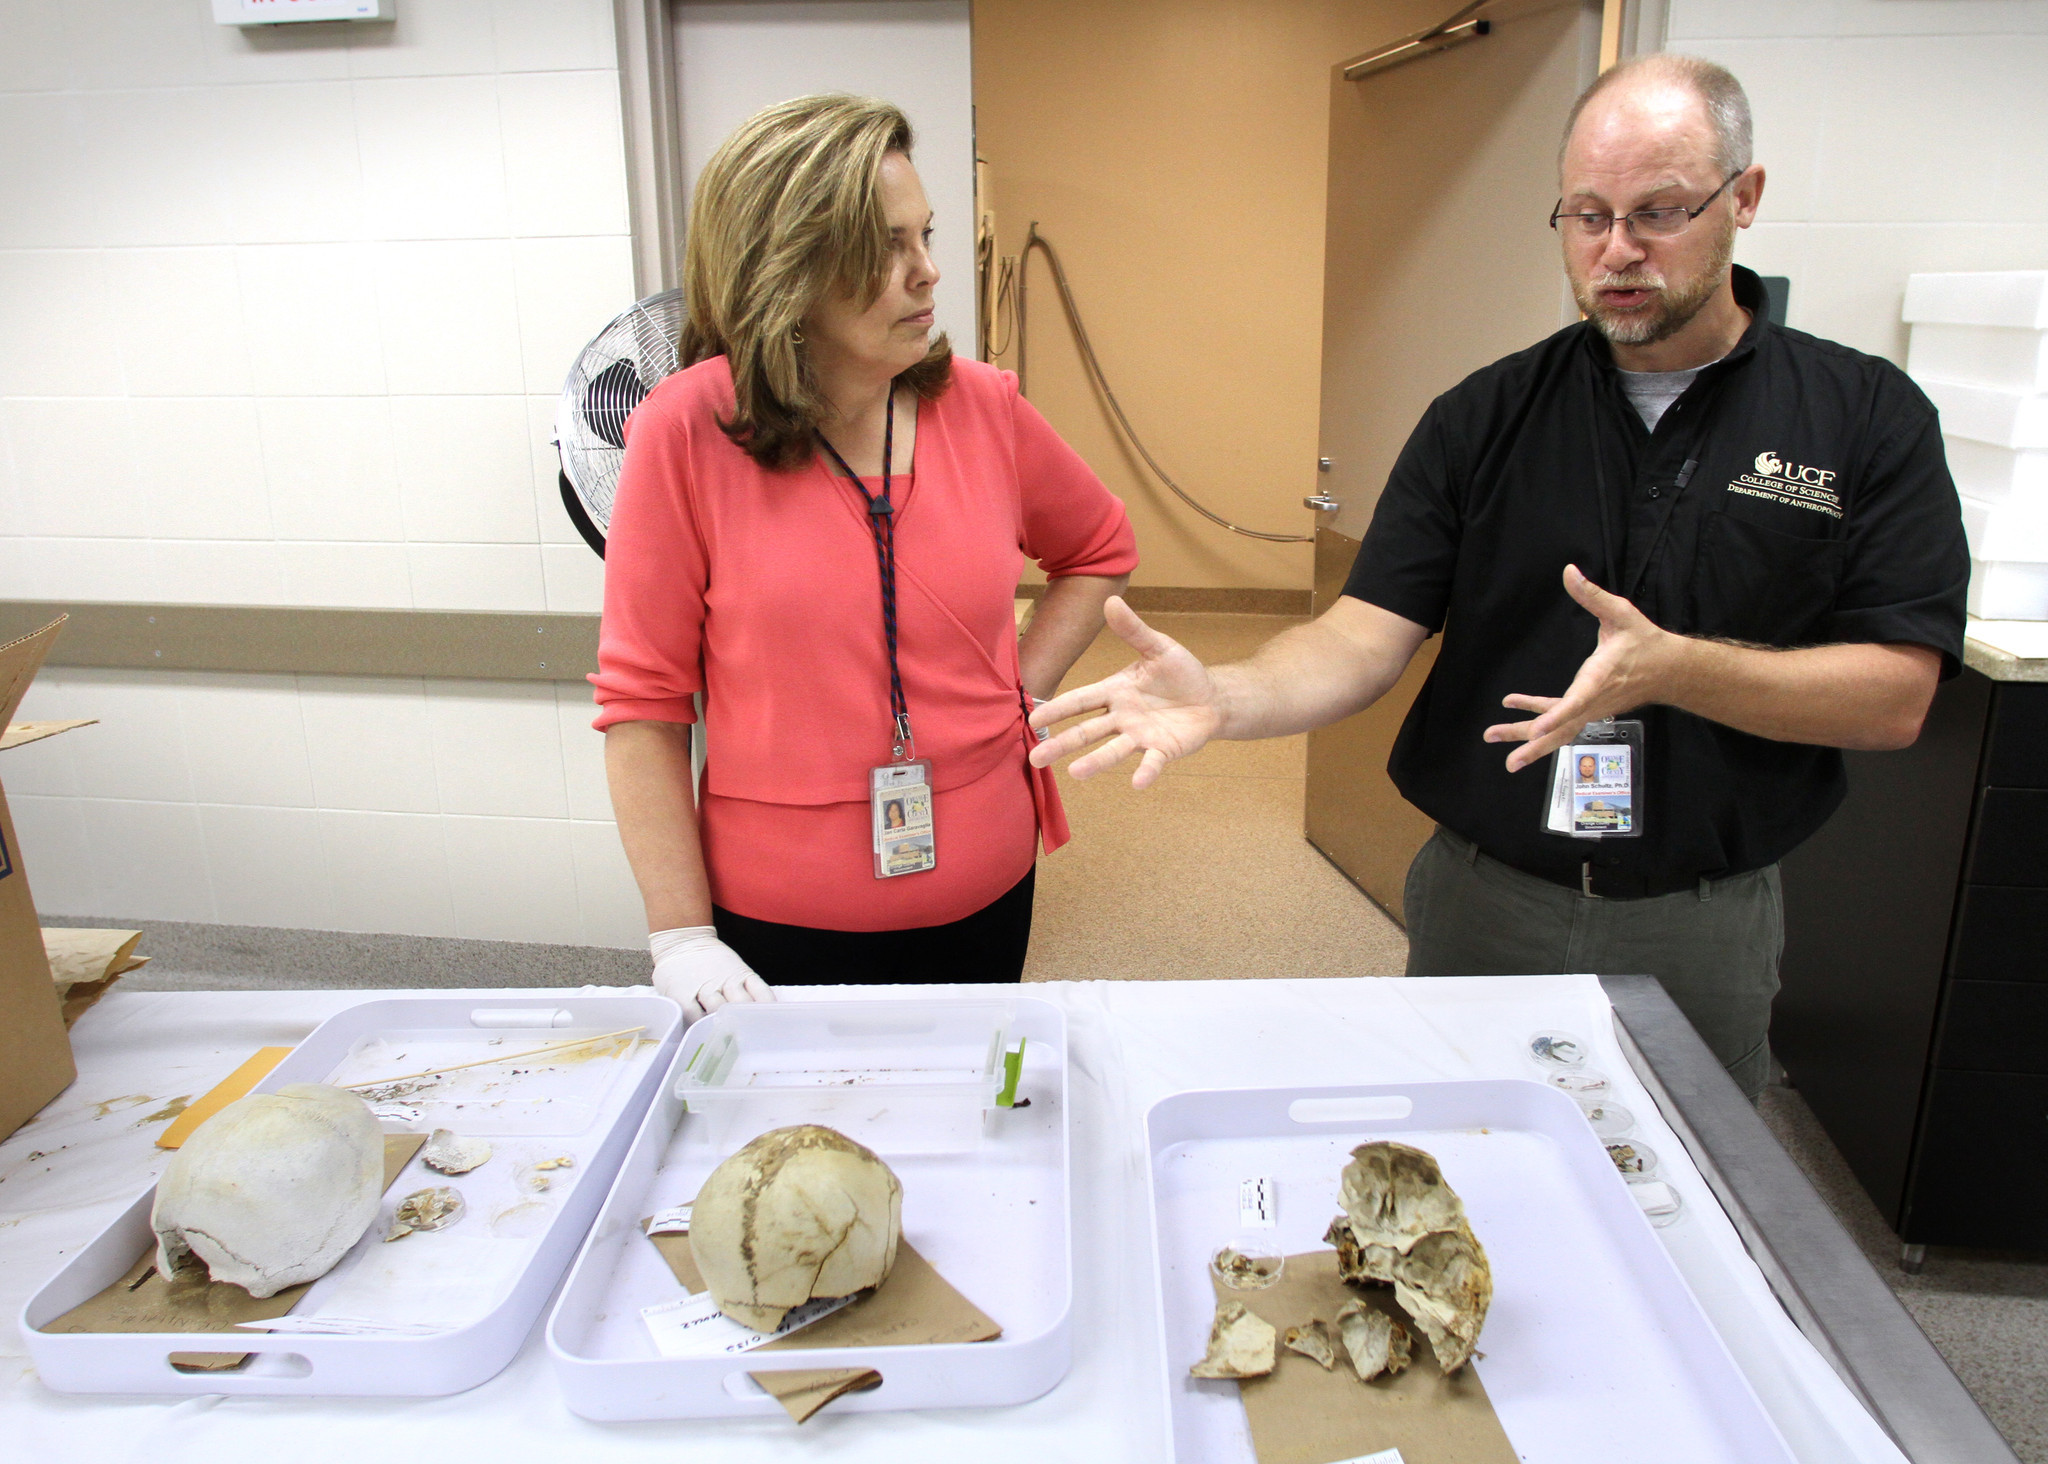 Dr Jan Garavaglia and Dr John Schultz discuss the two skulls